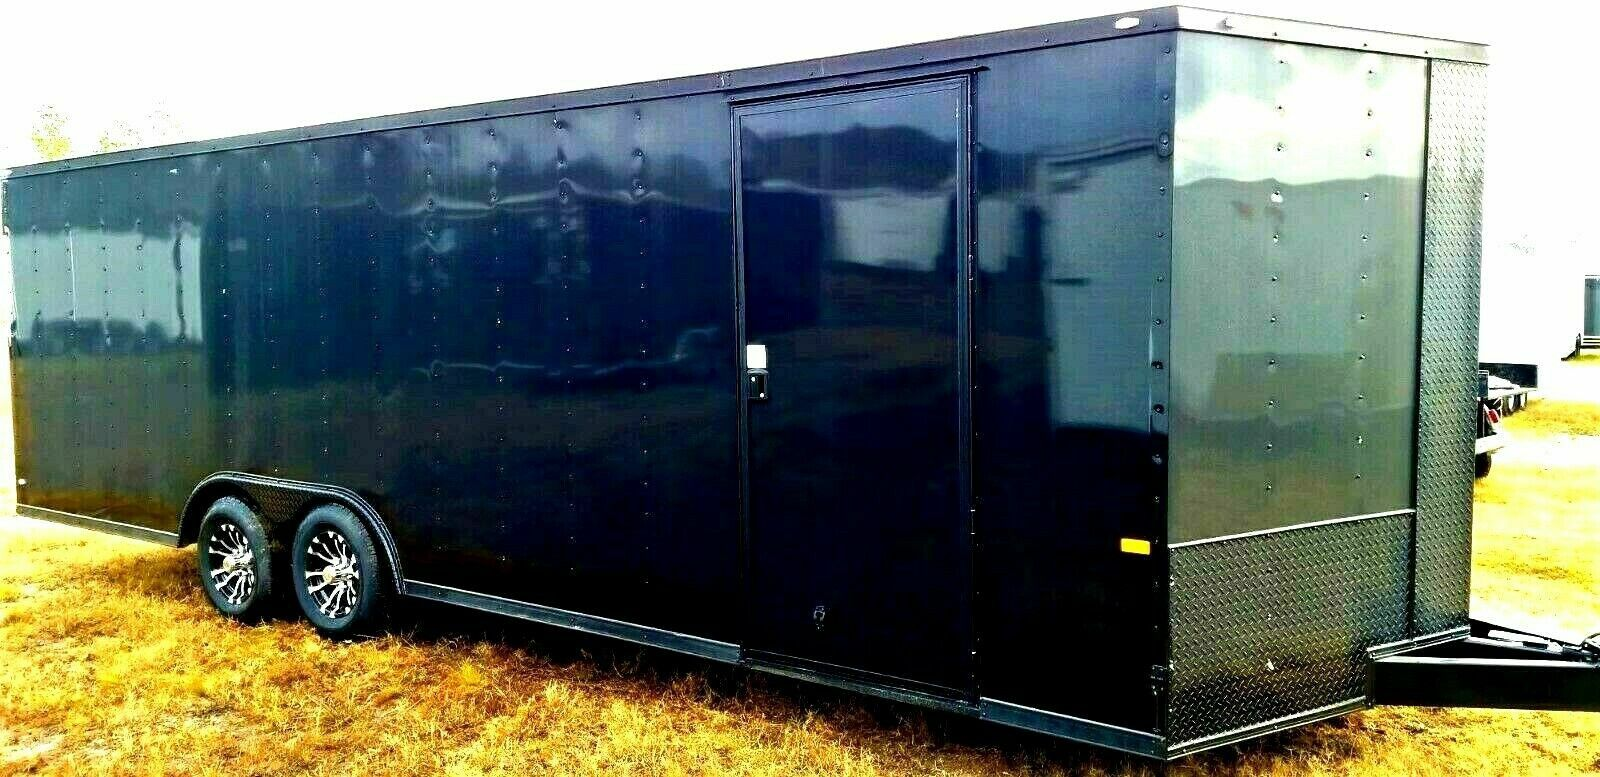 ENCLOSED TRAILERS ALL SIZES-20 24 28 32 VNOSE-SNOWMOBILE CAR HAULER STORAGE MOVING MOTORCYCLE ATV UTV QUAD SIDE BY SIDE